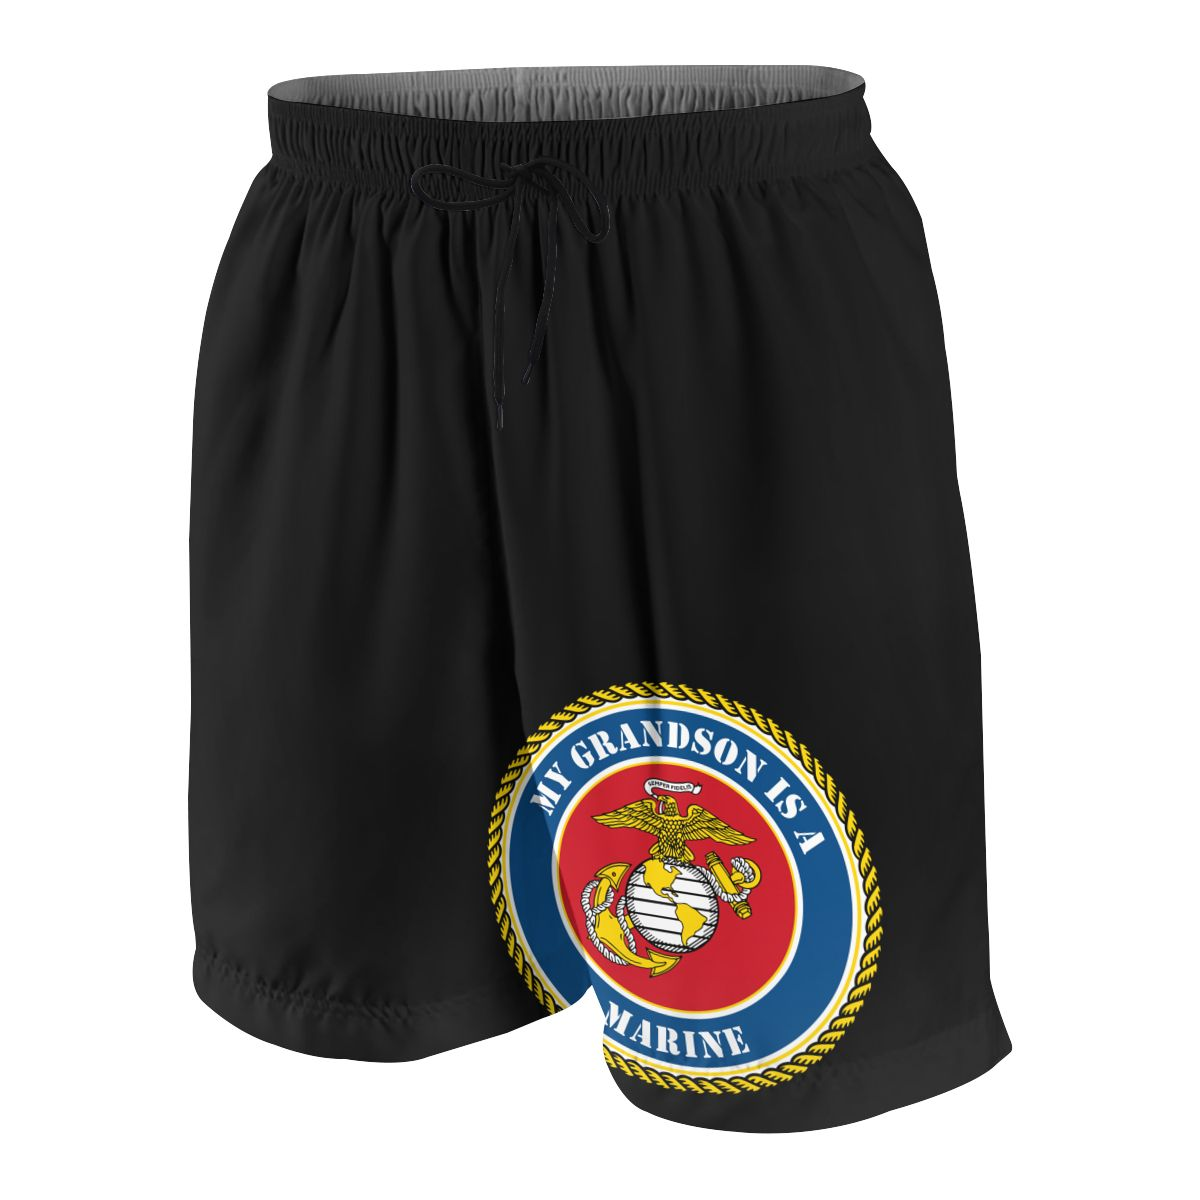 My Grandson Is A Marine Teenagers Comfortable Fashion Fitness Joggers Quick-dry Cool Short Sweatpants